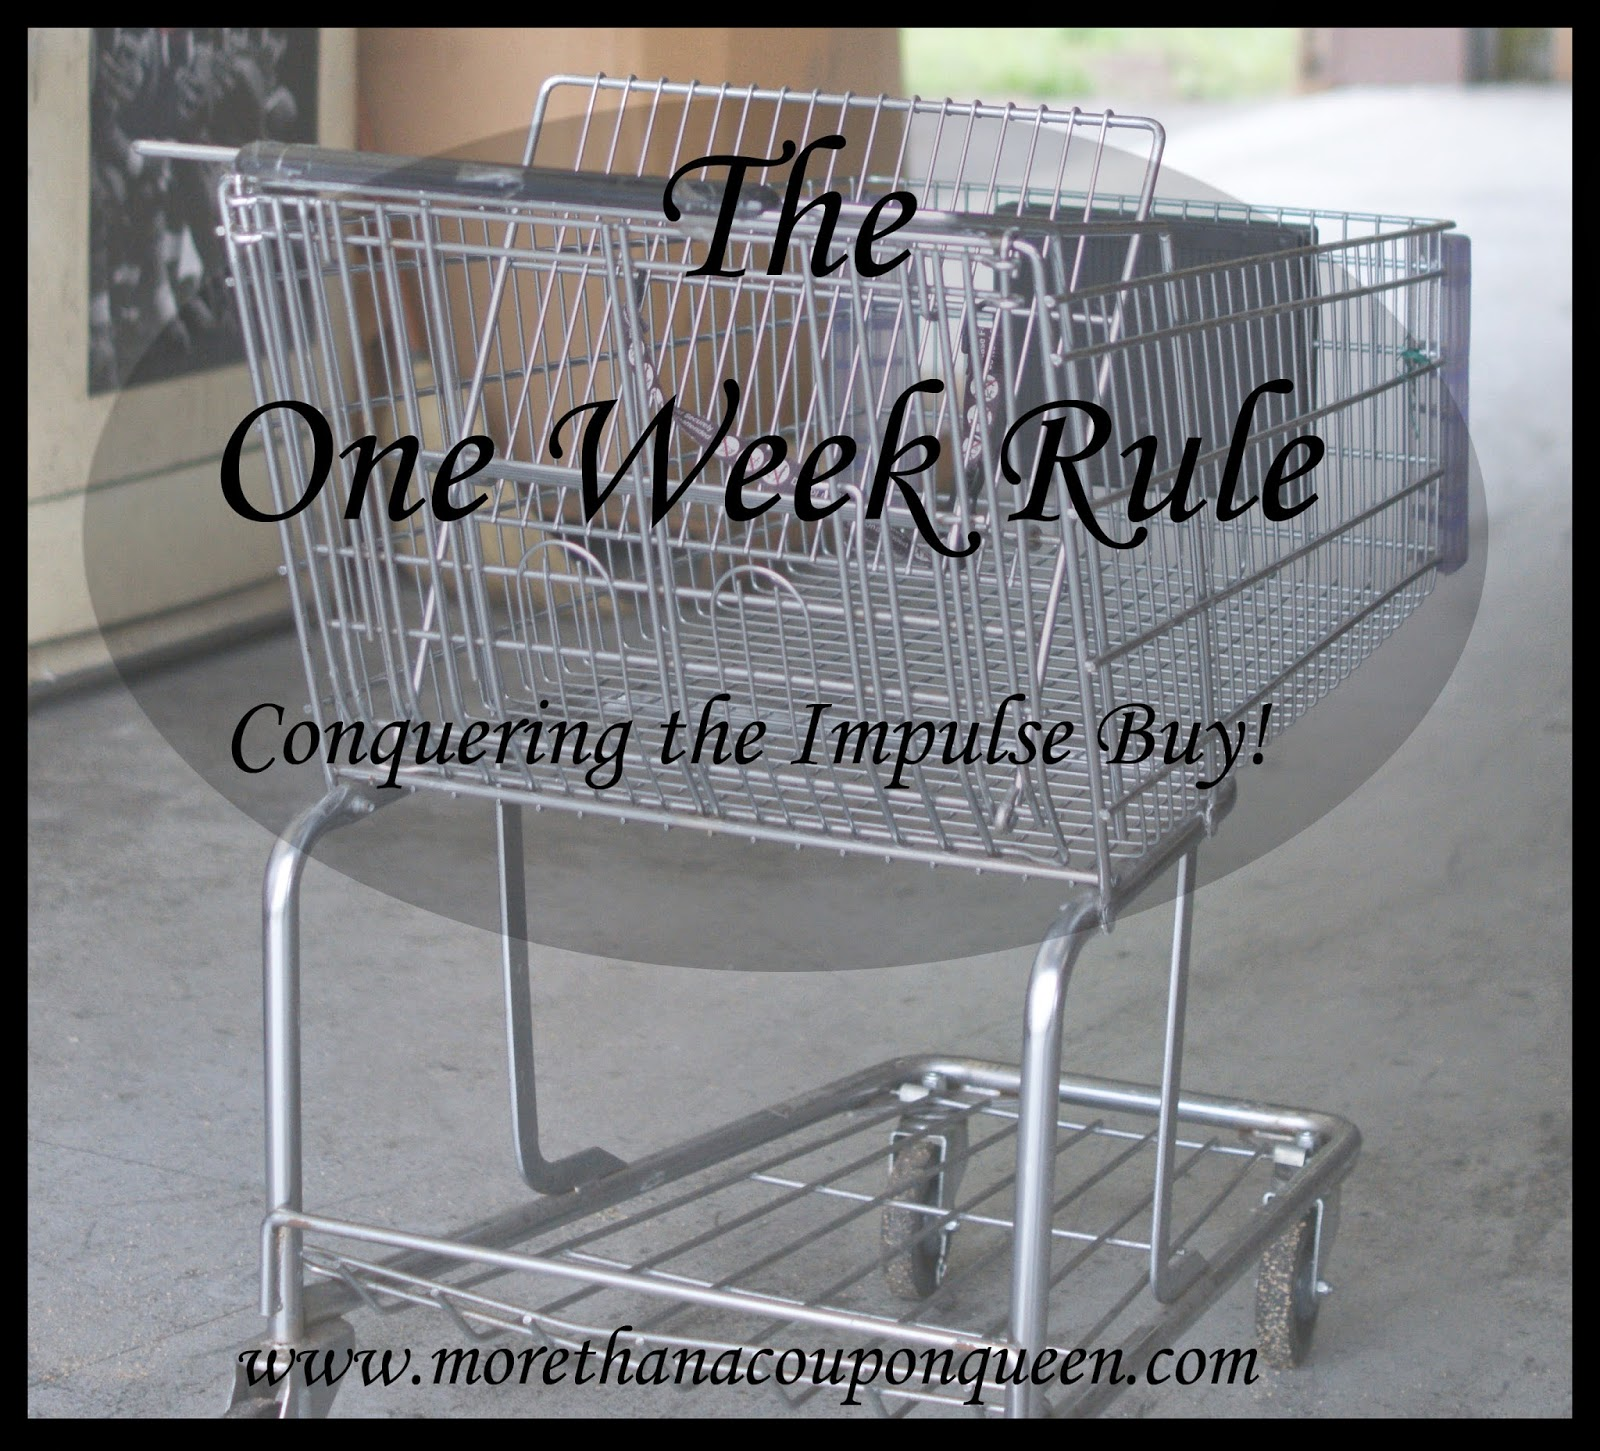 The One Week Rule - Conquering Impulse Buys